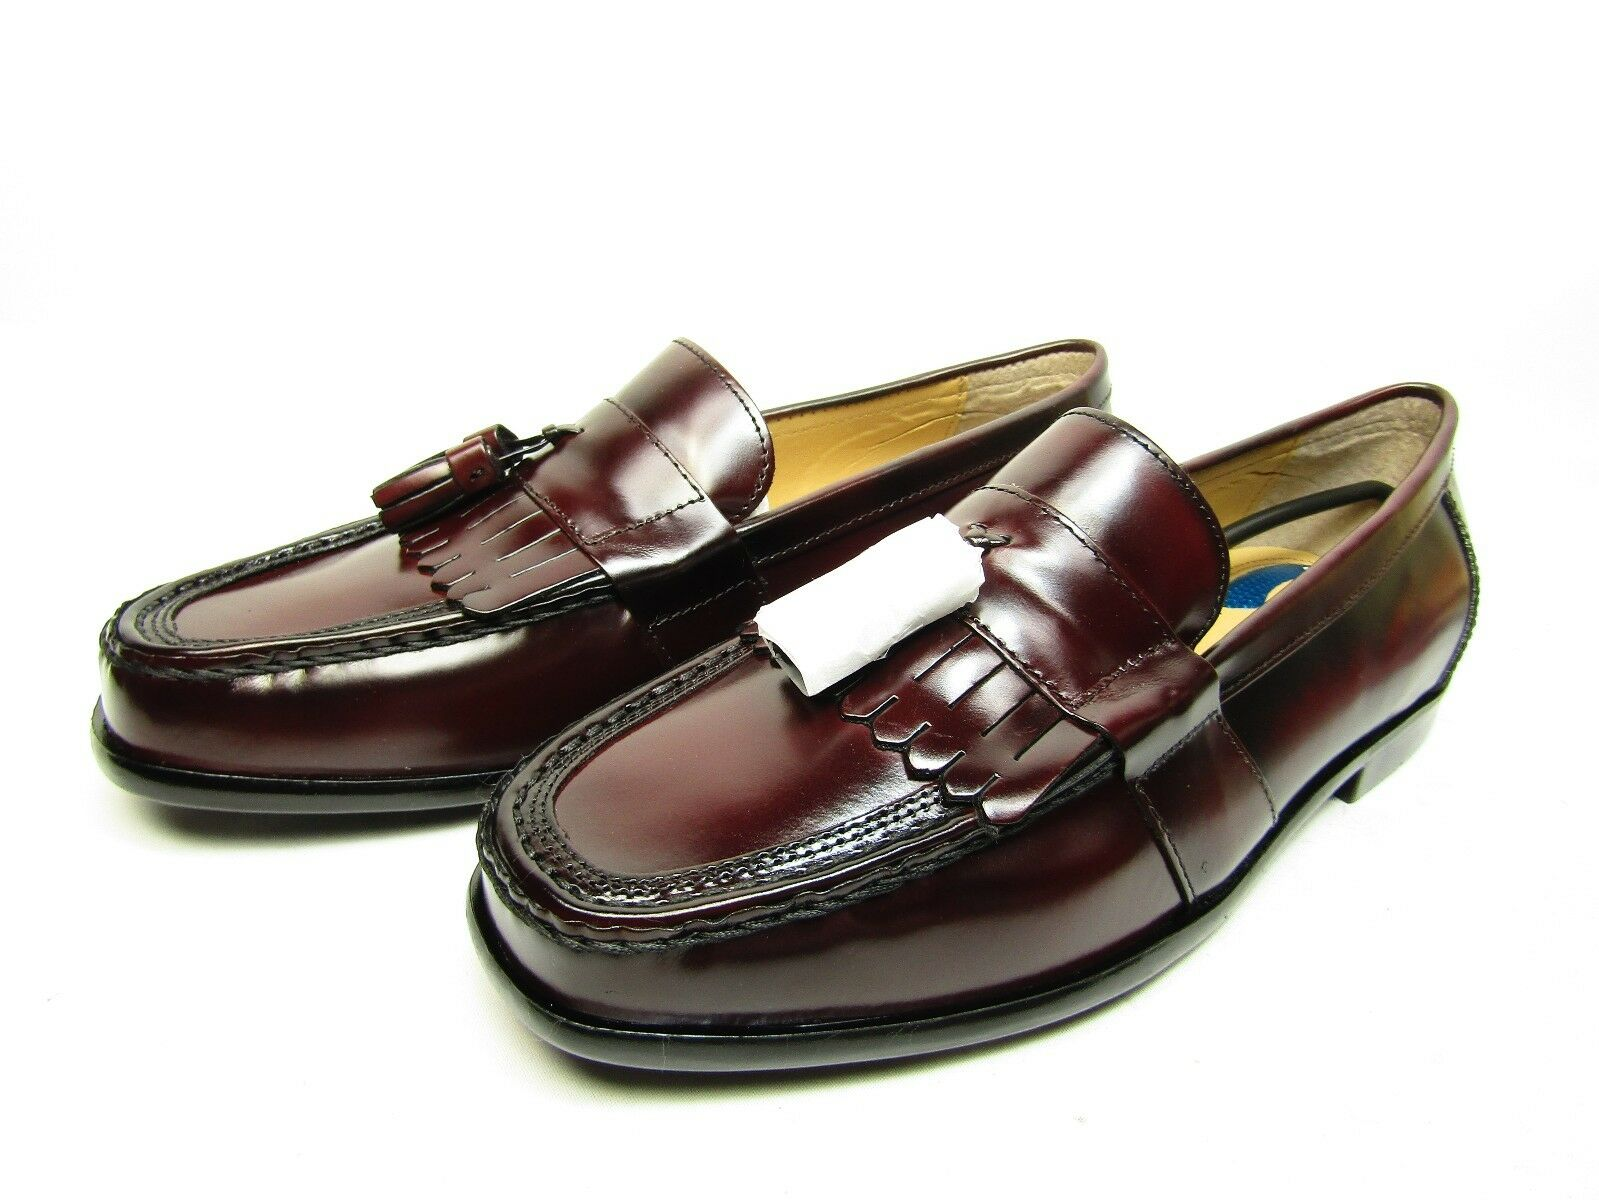 Nunn Bush Keaton Kiltie Tasseled Leather Dress shoes Burgundy Size 11M